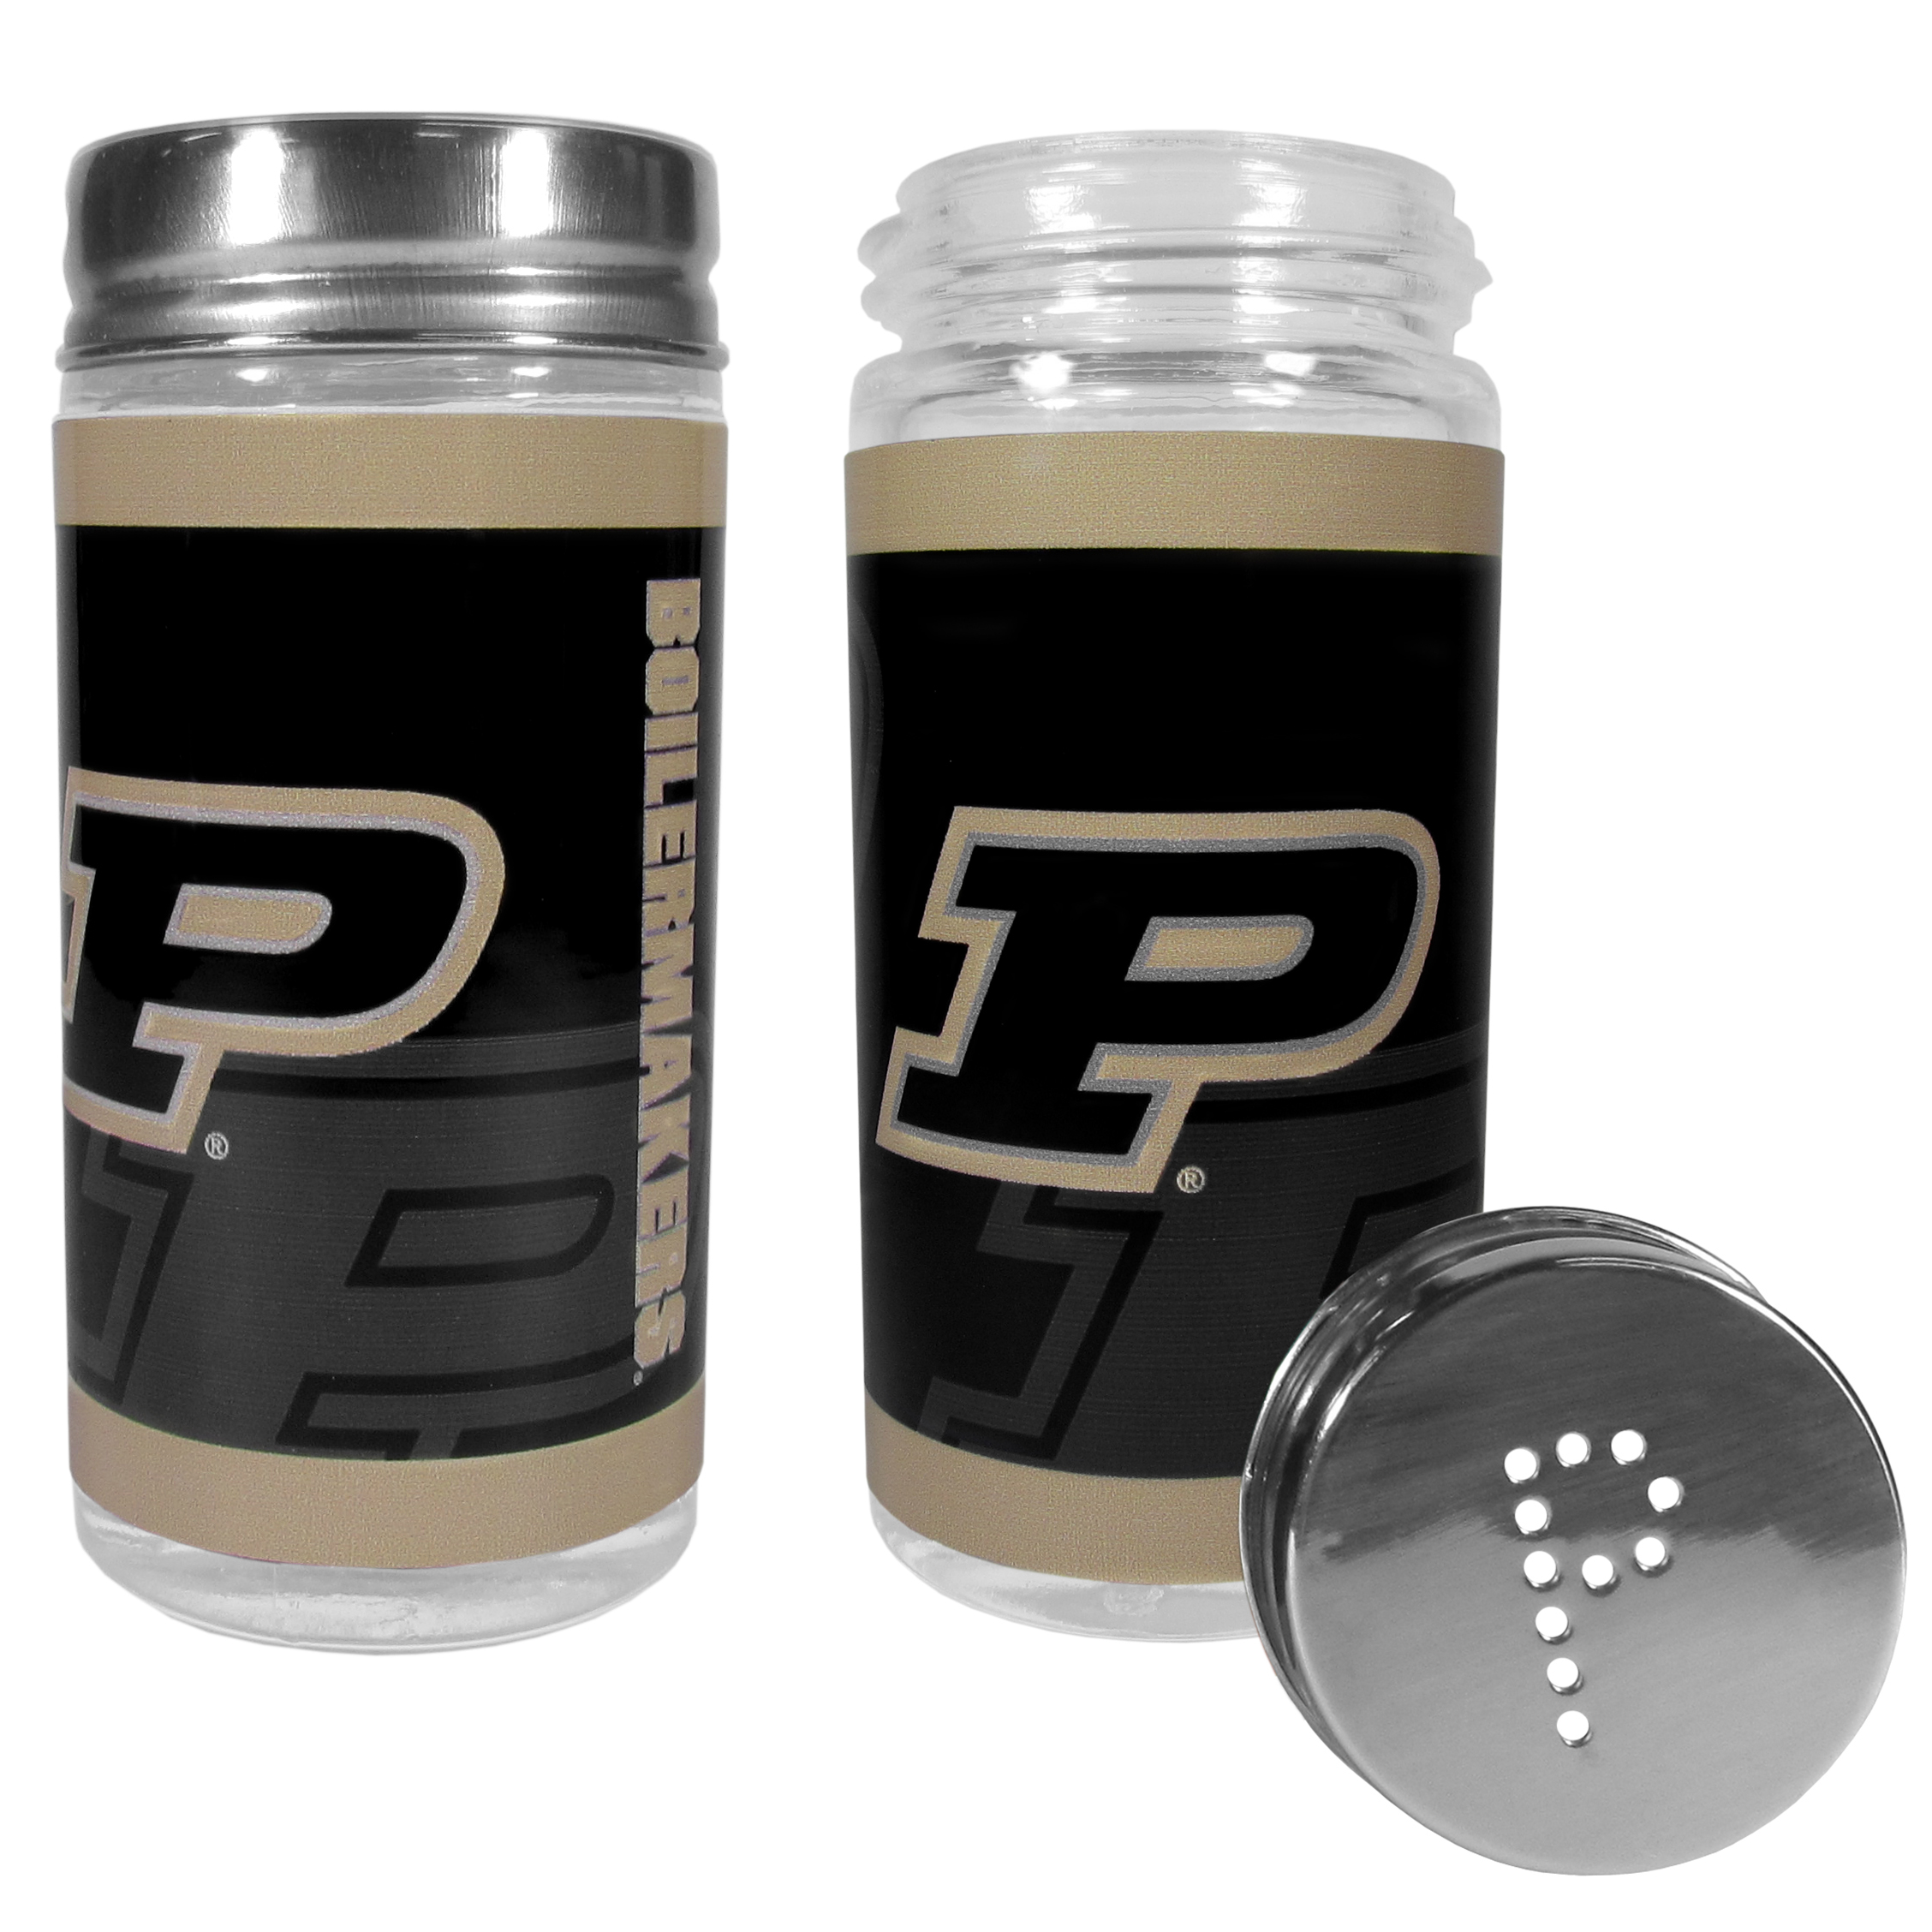 Purdue Boilermakers Tailgater Salt & Pepper Shakers - No tailgate party is complete without your Purdue Boilermakers salt & pepper shakers featuring bright team graphics. The glass shakers are 3.75 inches tall and the screw top lids have holes that spell out P and S. These team shakers are a great grill accessory whether you are barbecuing on the patio, picnicing or having a game day party.